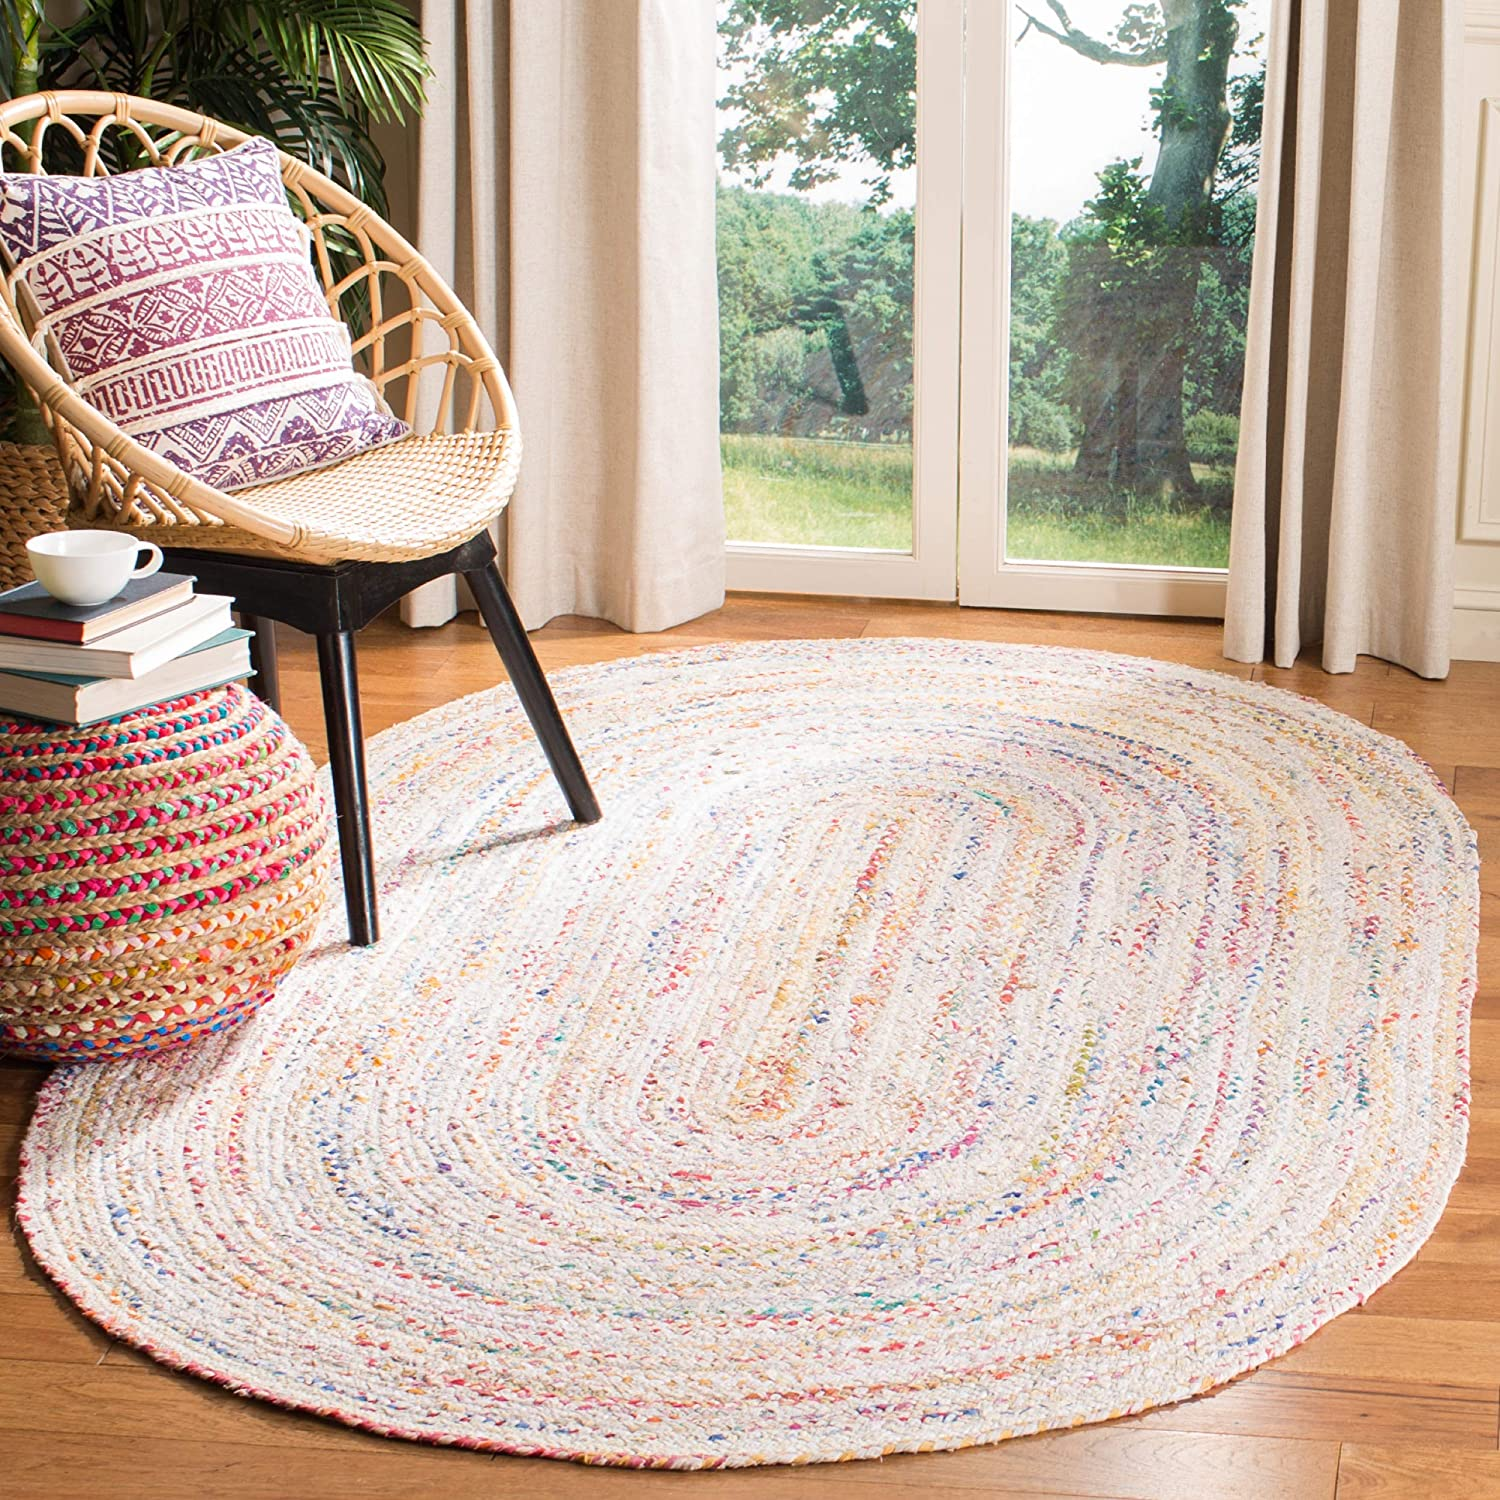 Safavieh Braided Collection BRD210B Handwoven Ivory and Multicolored Oval Area Rug (6' x 9')